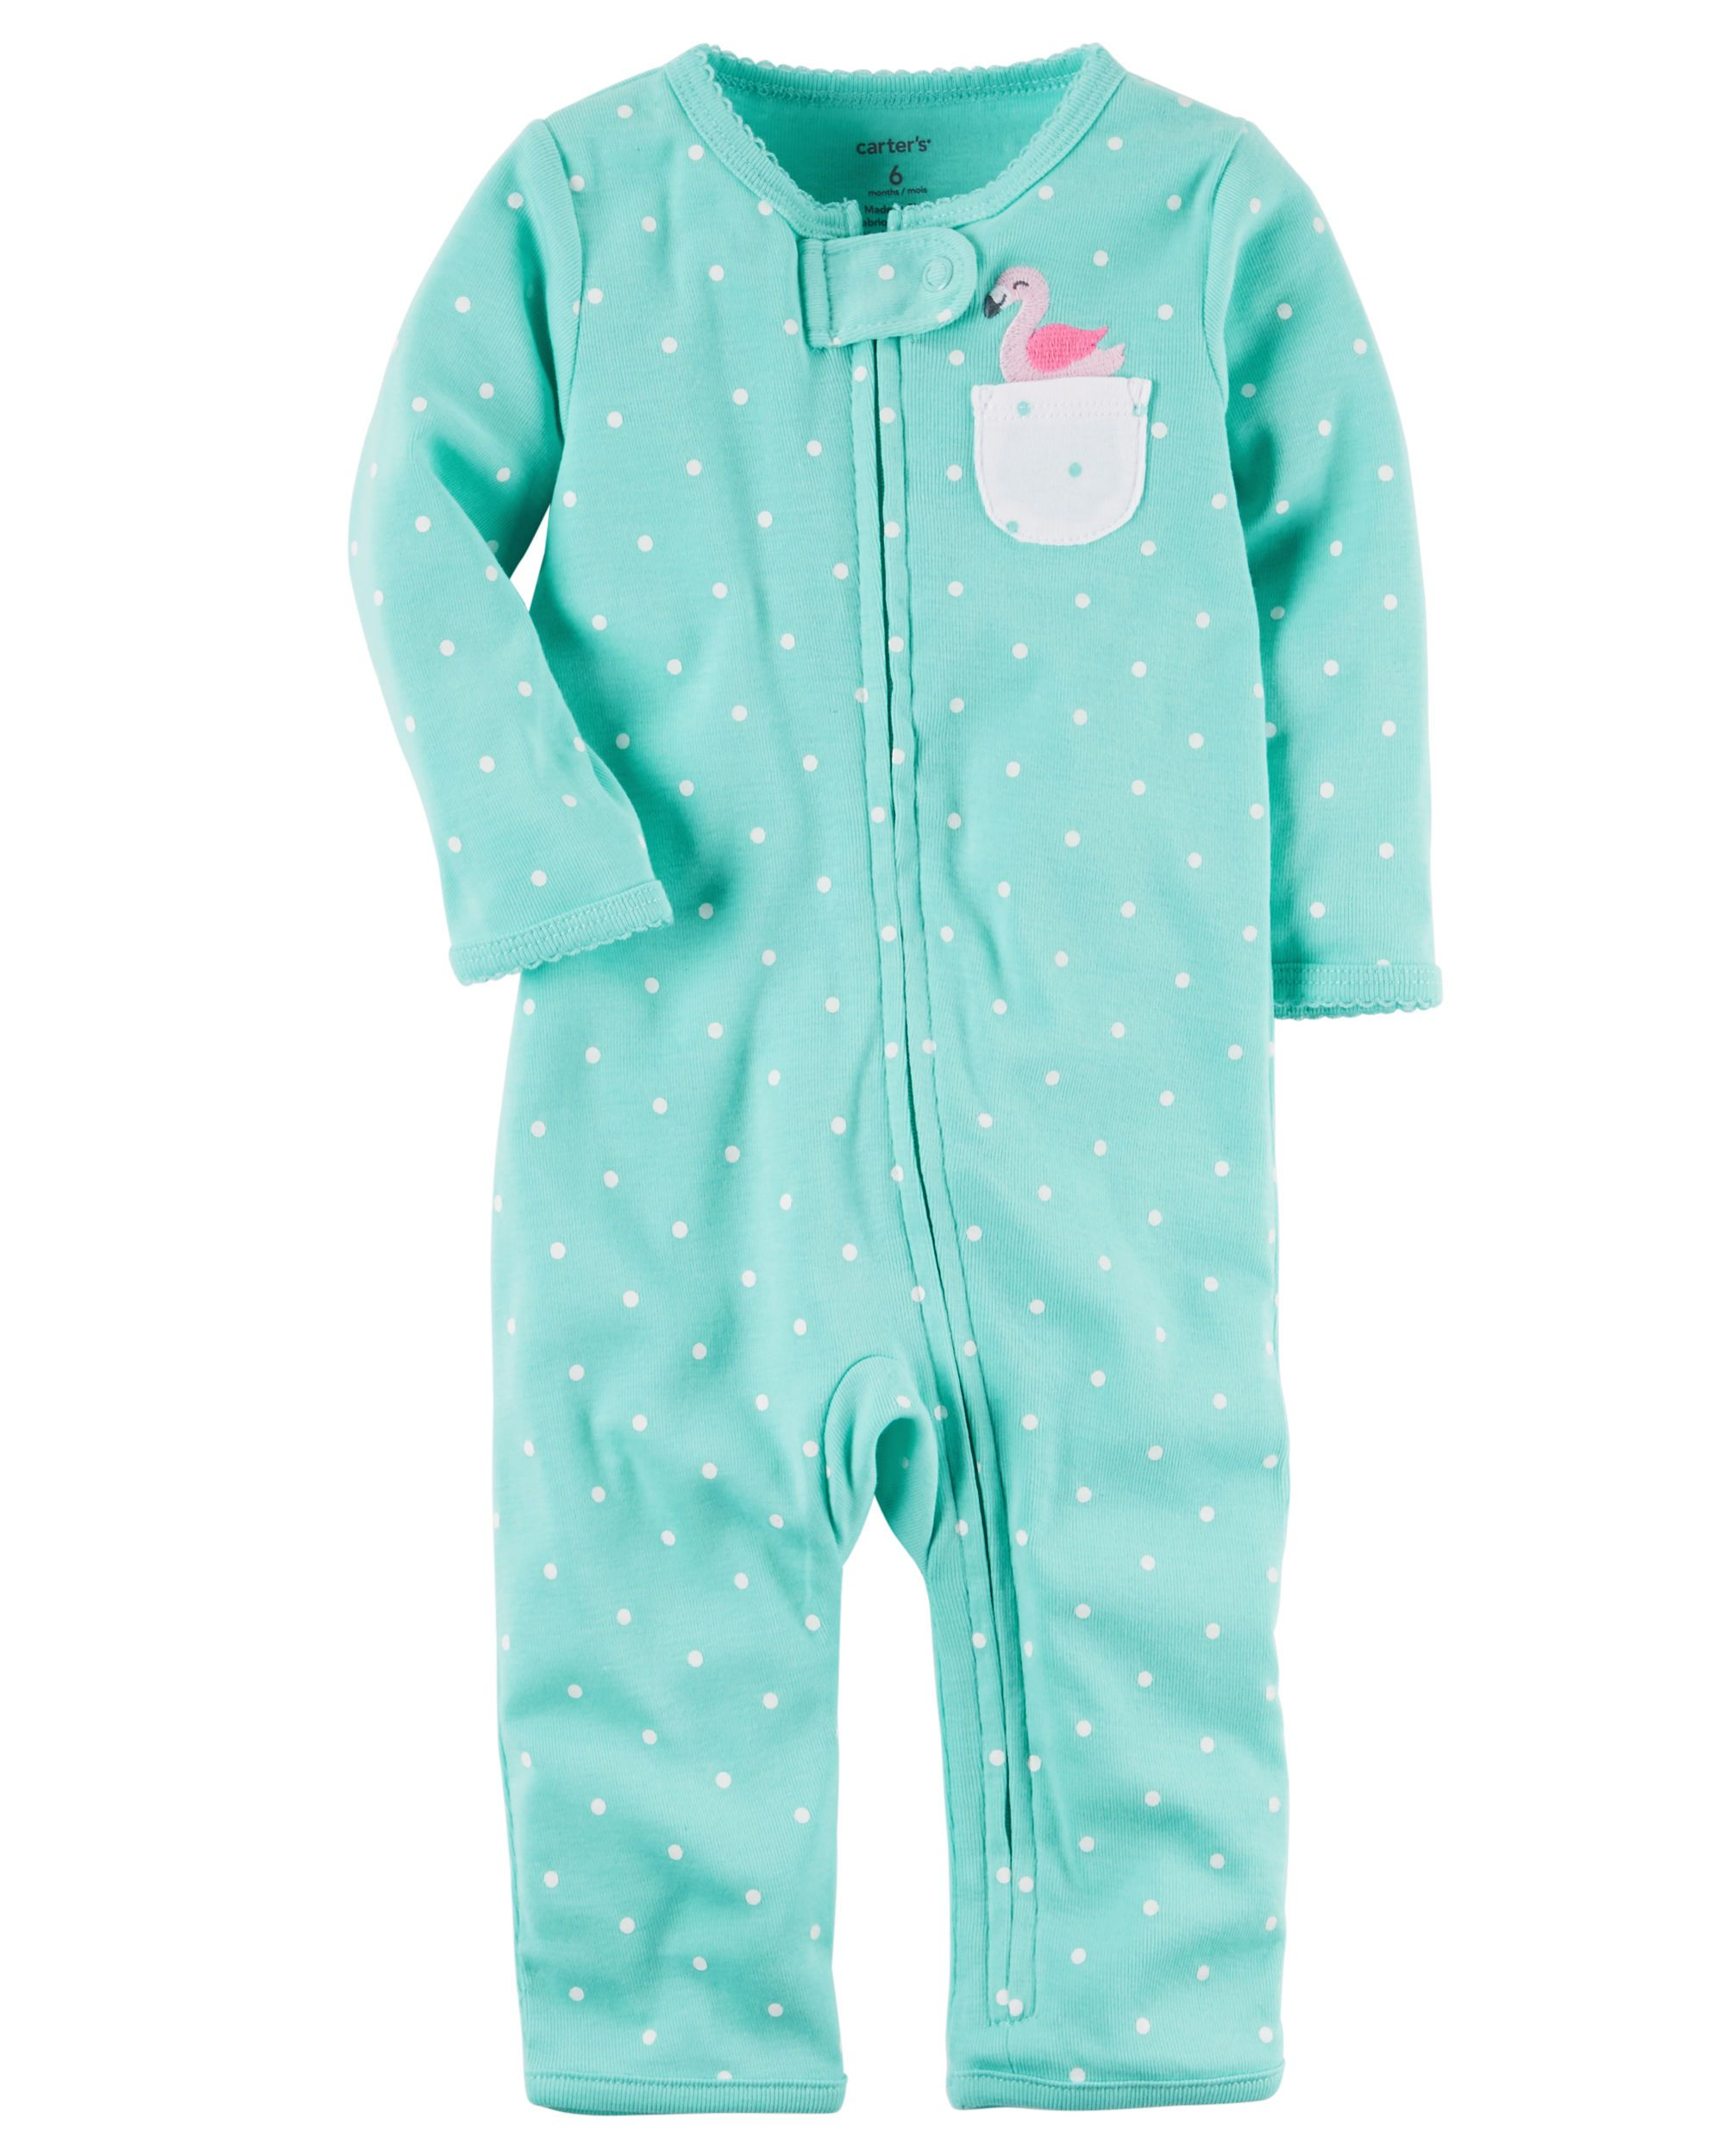 baebcc501f54 Neon Zip-Up Footless Sleep   Play